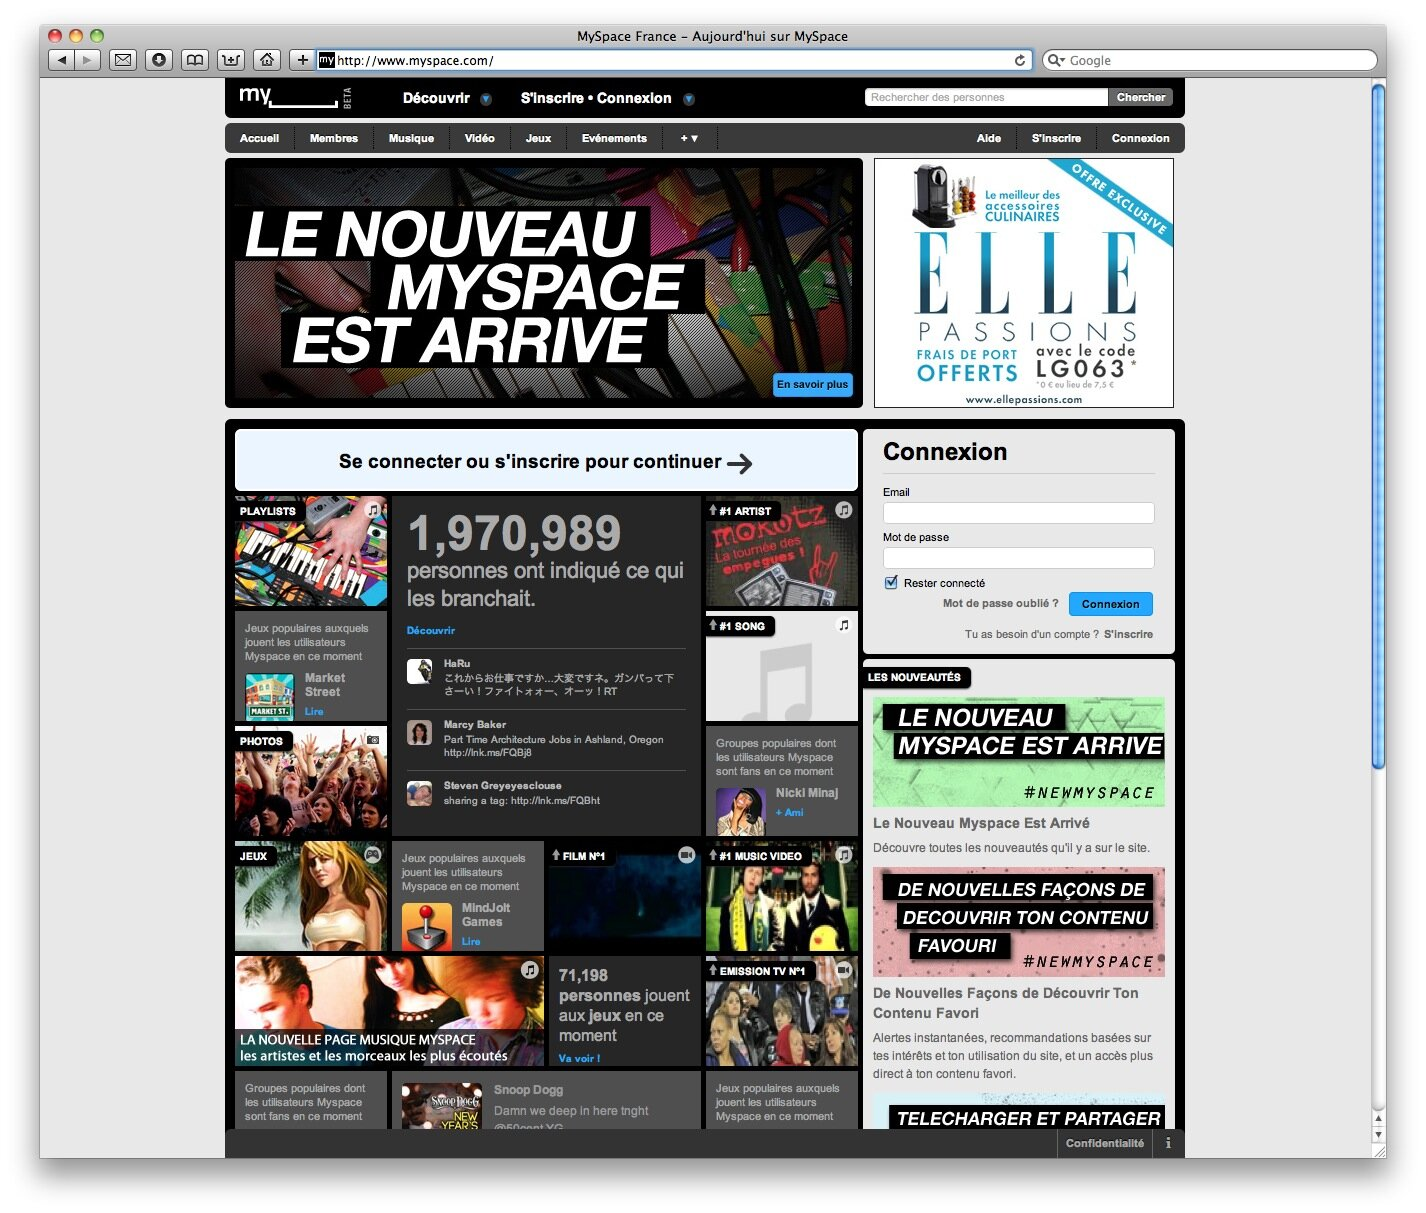 site de rencontre myspace Cannes